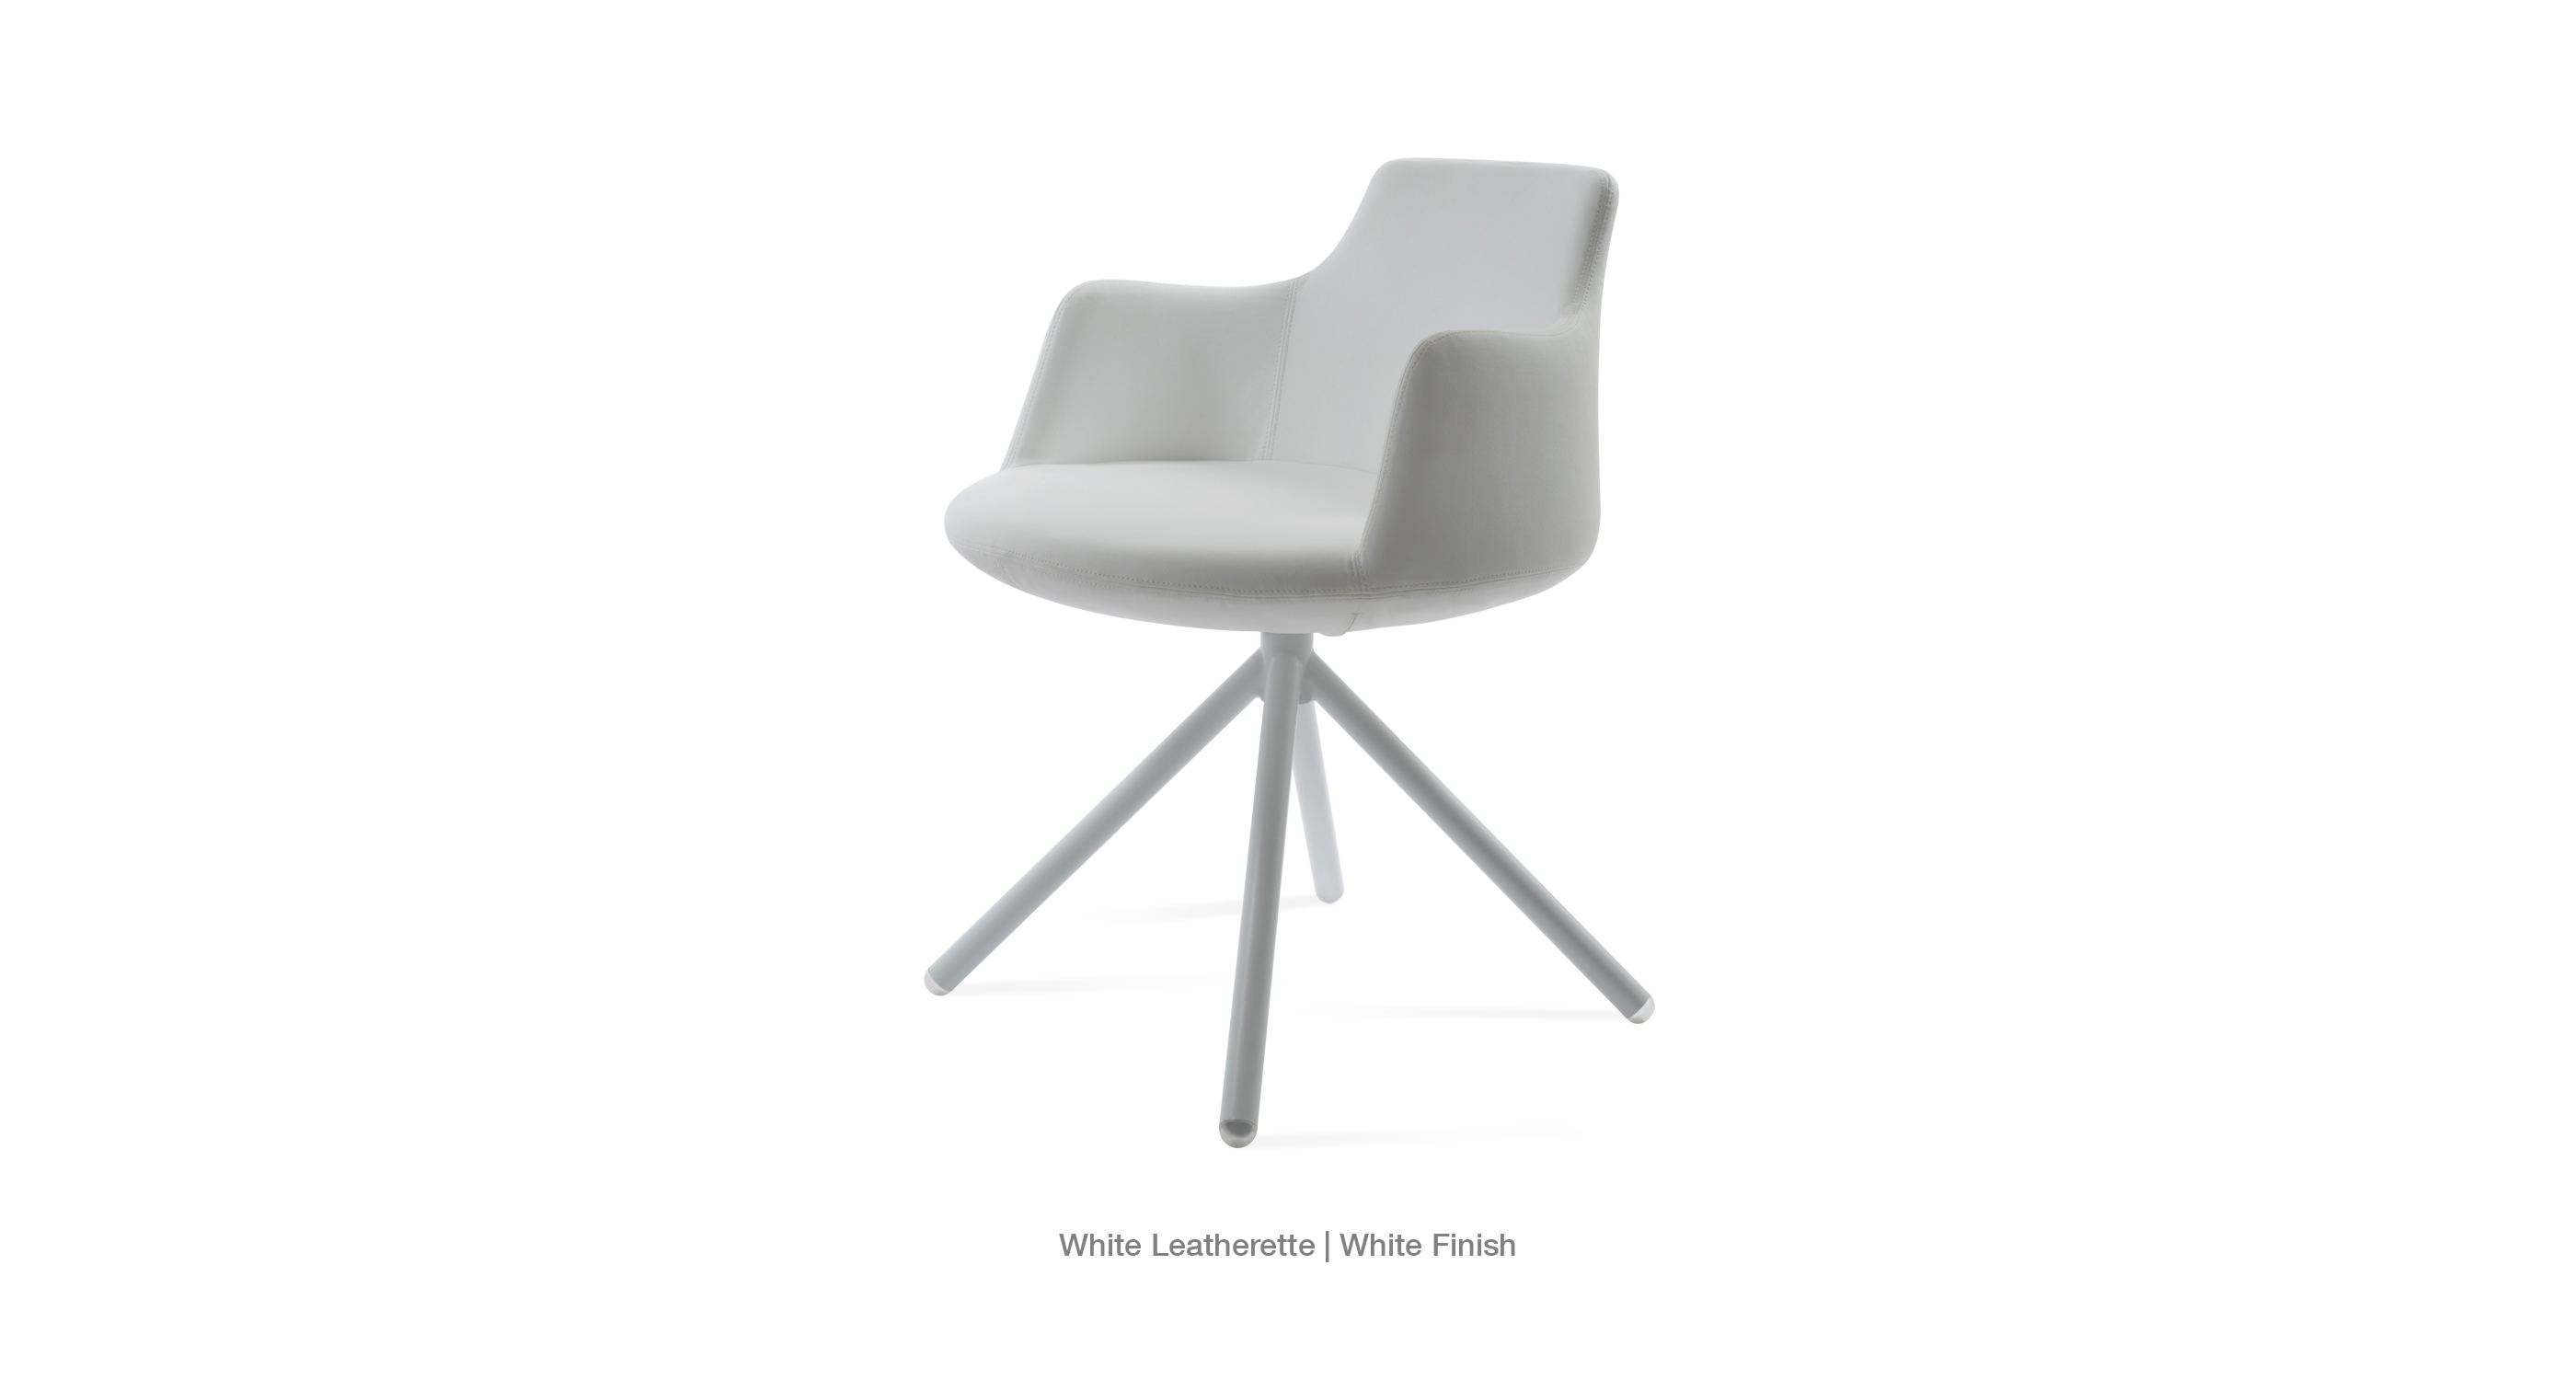 white leatherette - white finish